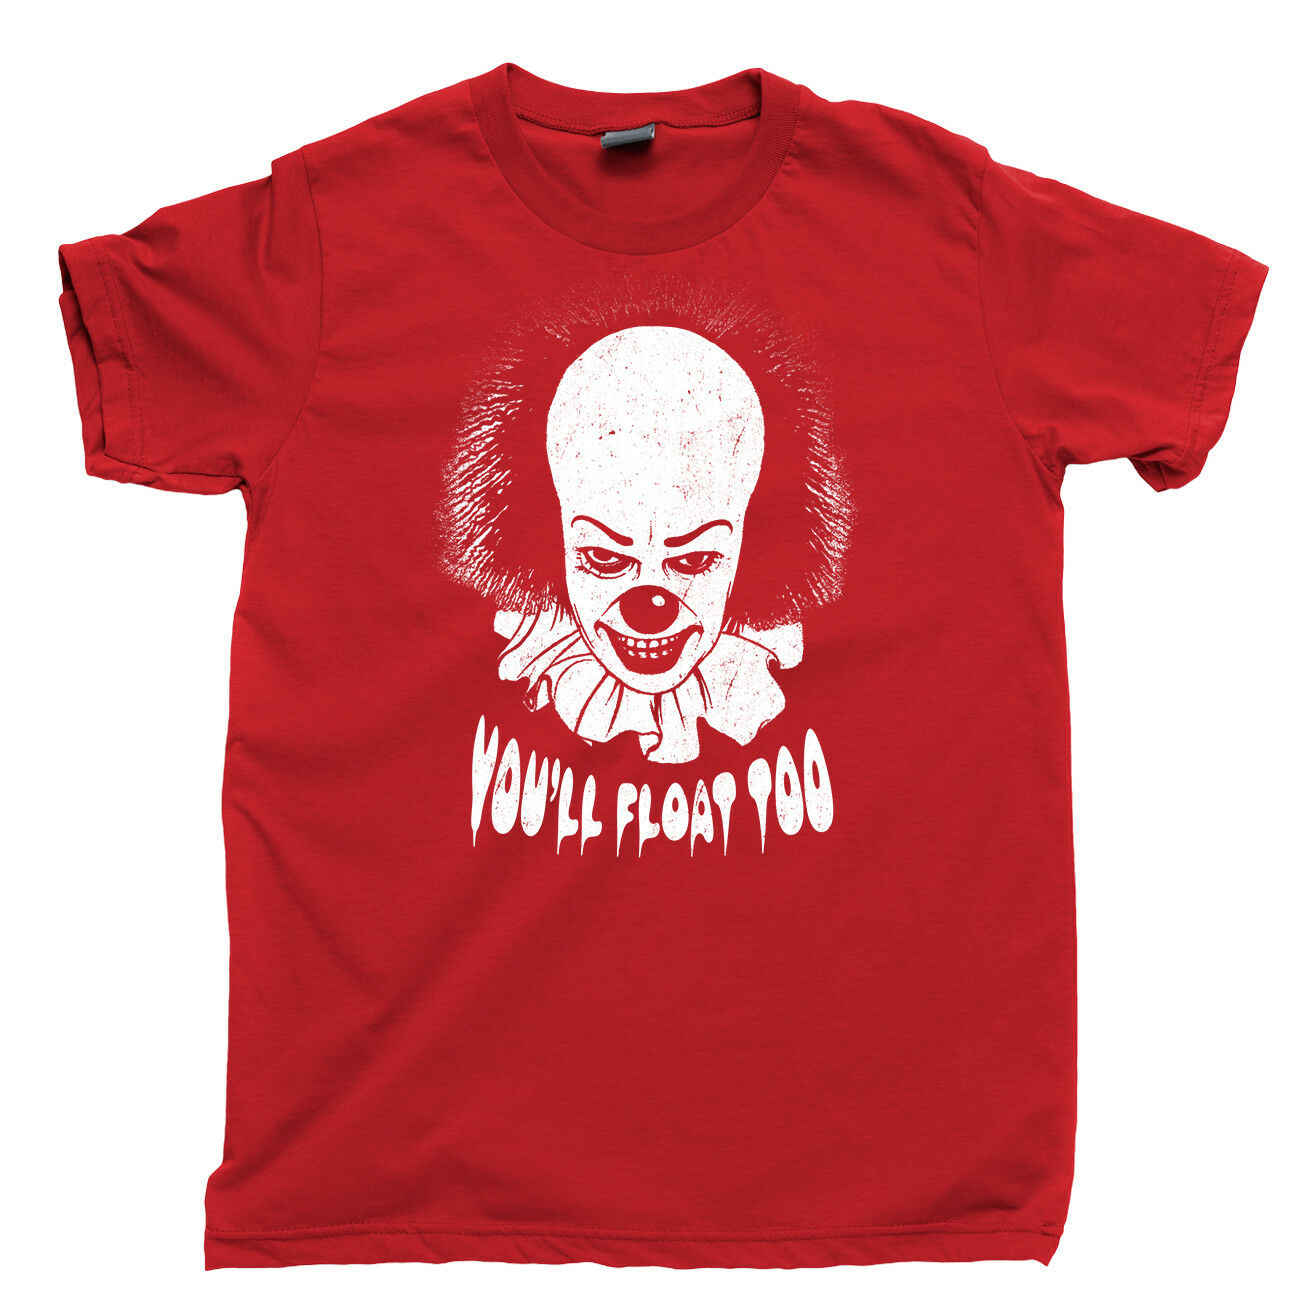 SI T Camicia PENNYWISE Pagliaccio Assassino Chud Stephen King Derry Maine Perdenti Club Tee